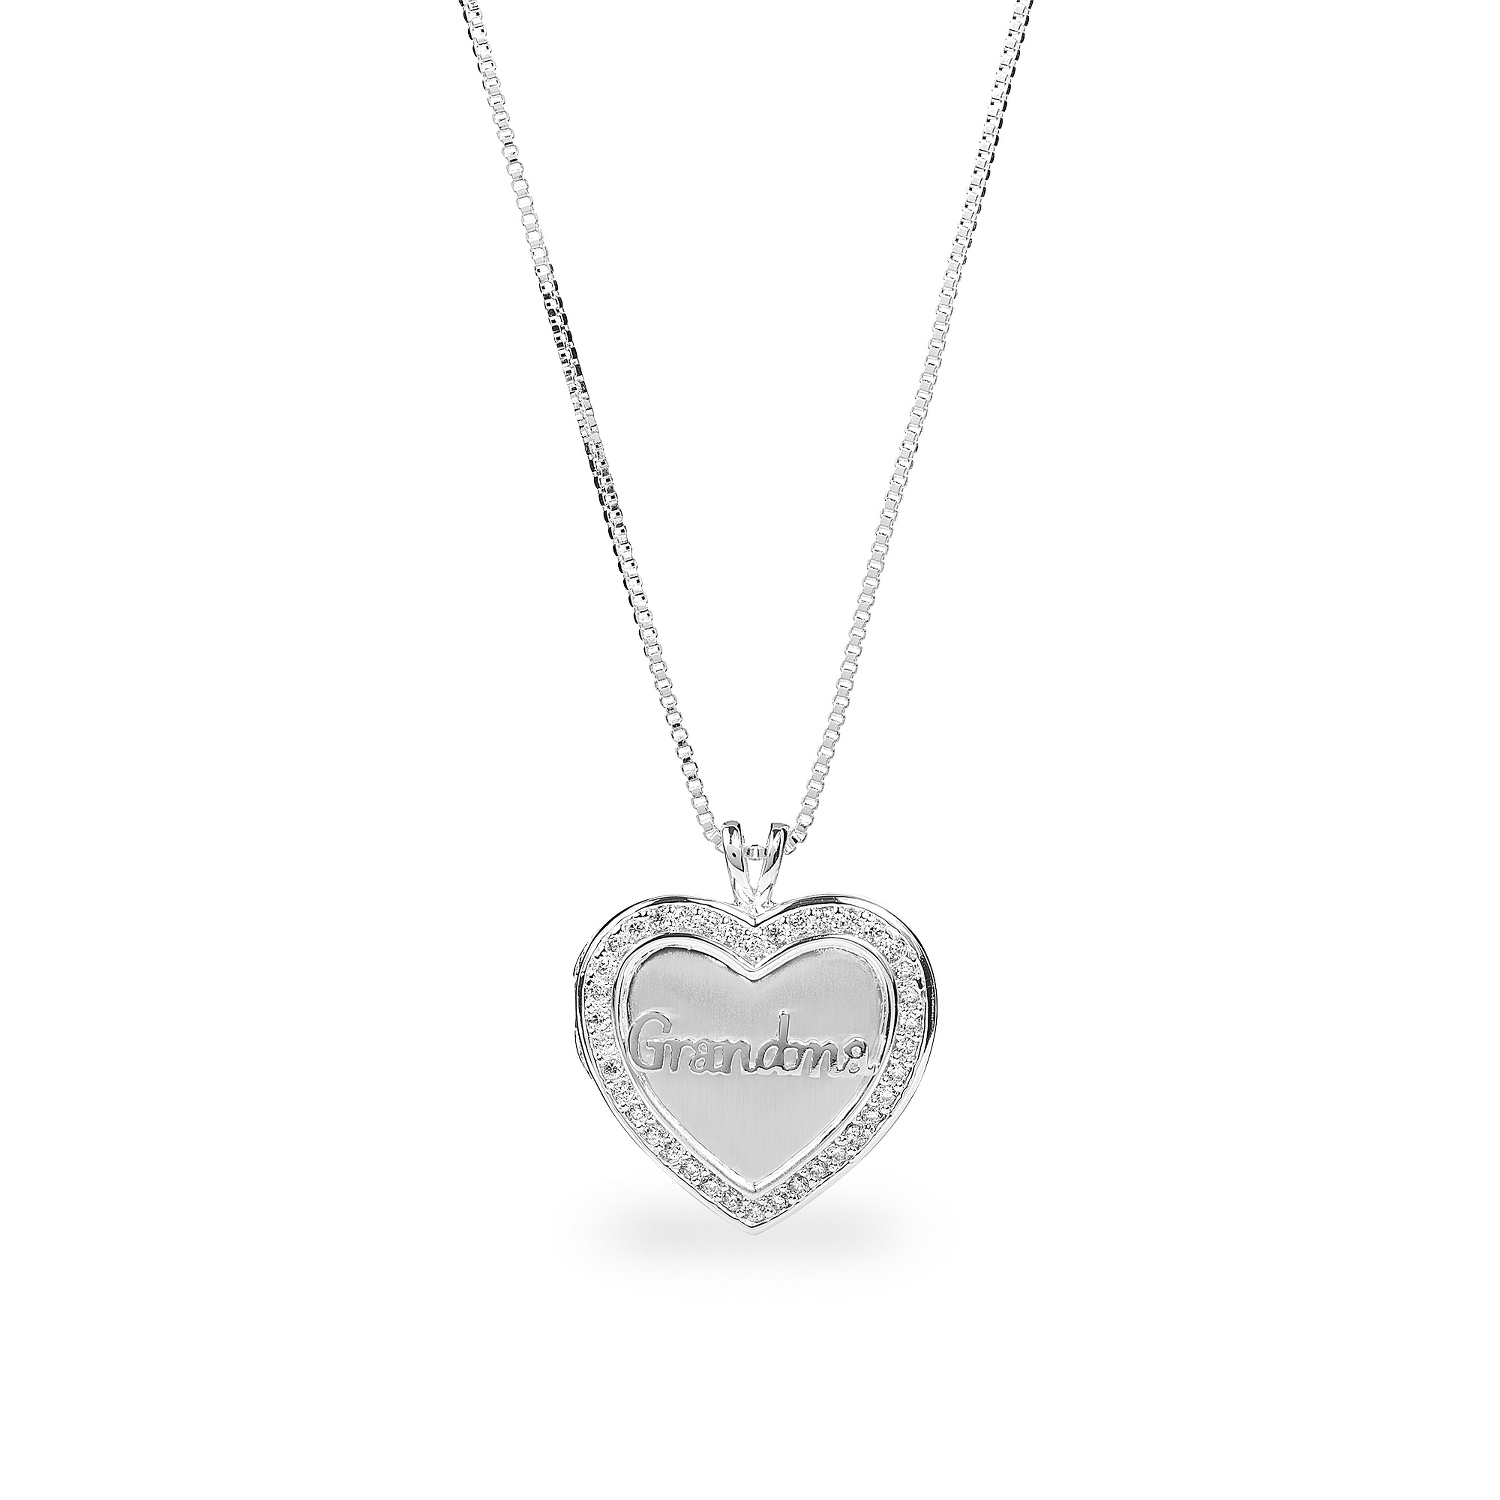 v double p create personalized lockets your zales cutout silver monogrammed monogram in initials own main heart necklaces sterling necklace strand